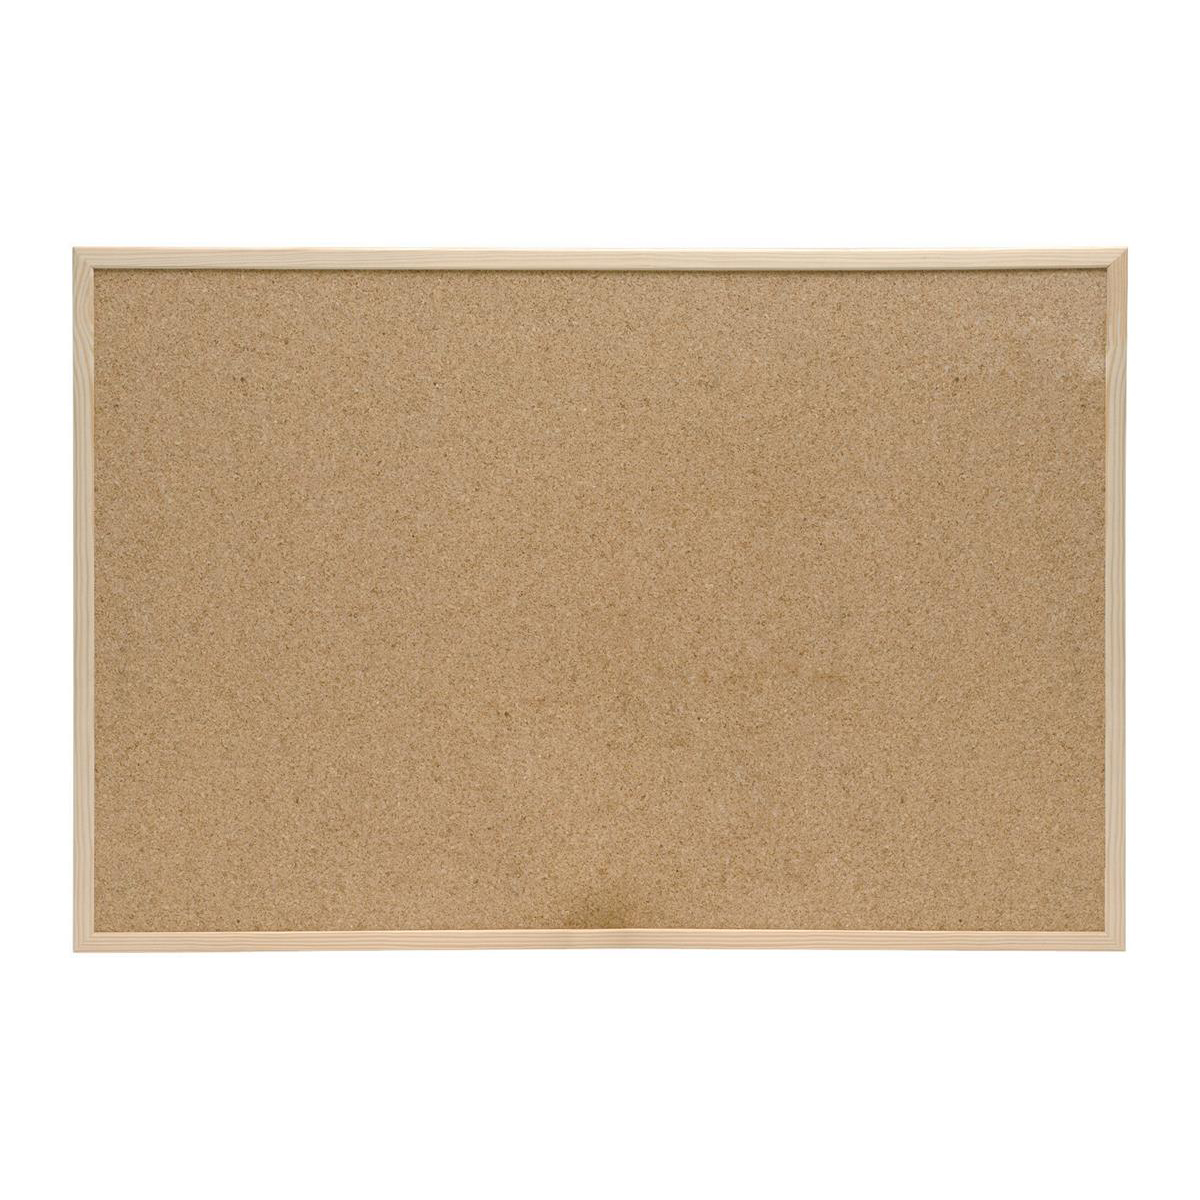 5 Star Office Noticeboard Cork with Pine Frame W1200xH900mm